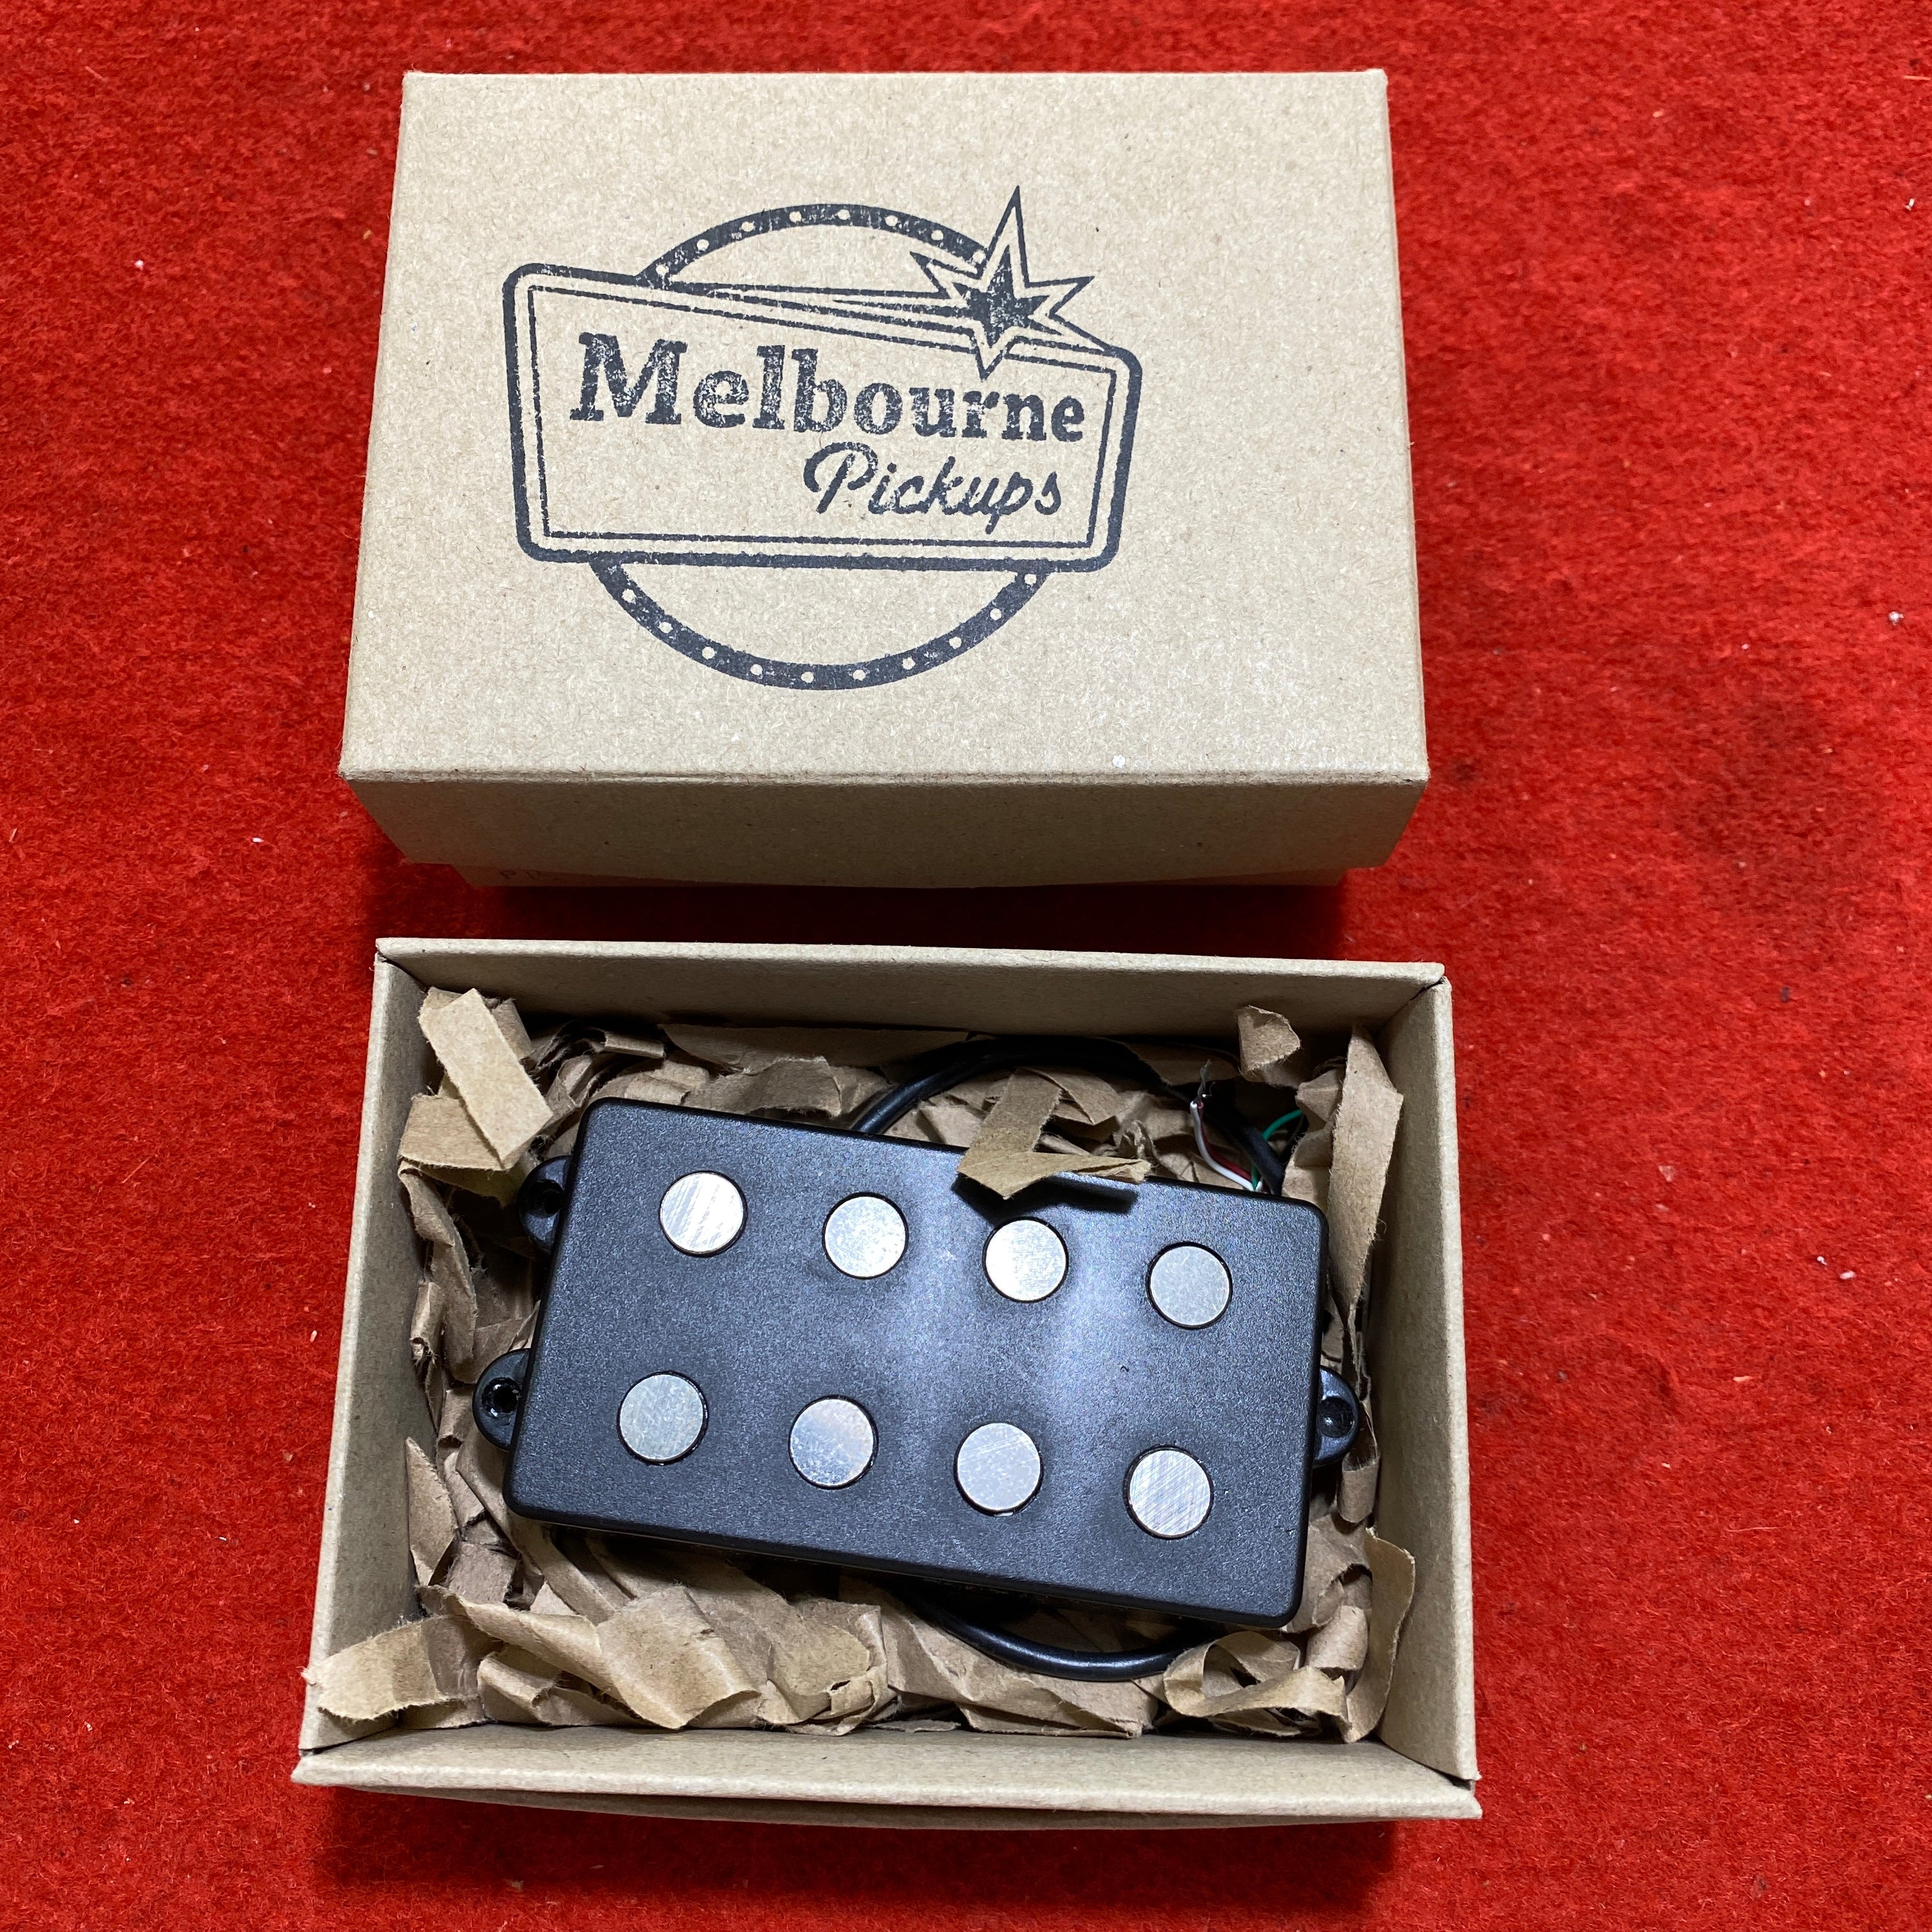 Music Man Style Pickups by Melbourne Pickups